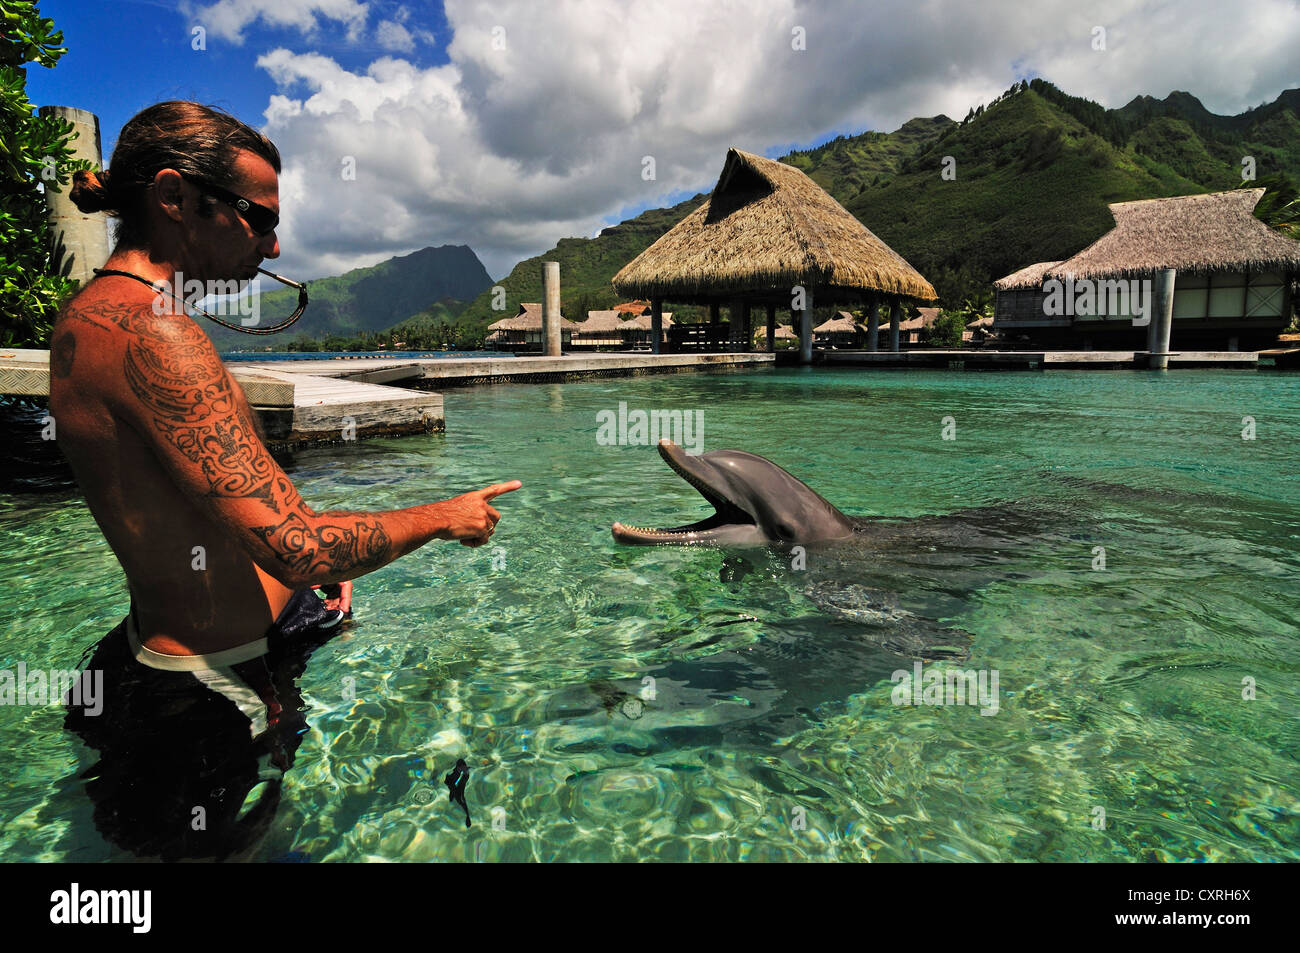 Moorea Dolphin Center, Hotel Intercontinental, Westward Islands, Society Islands, French Polynesia, Pacific Ocean - Stock Image